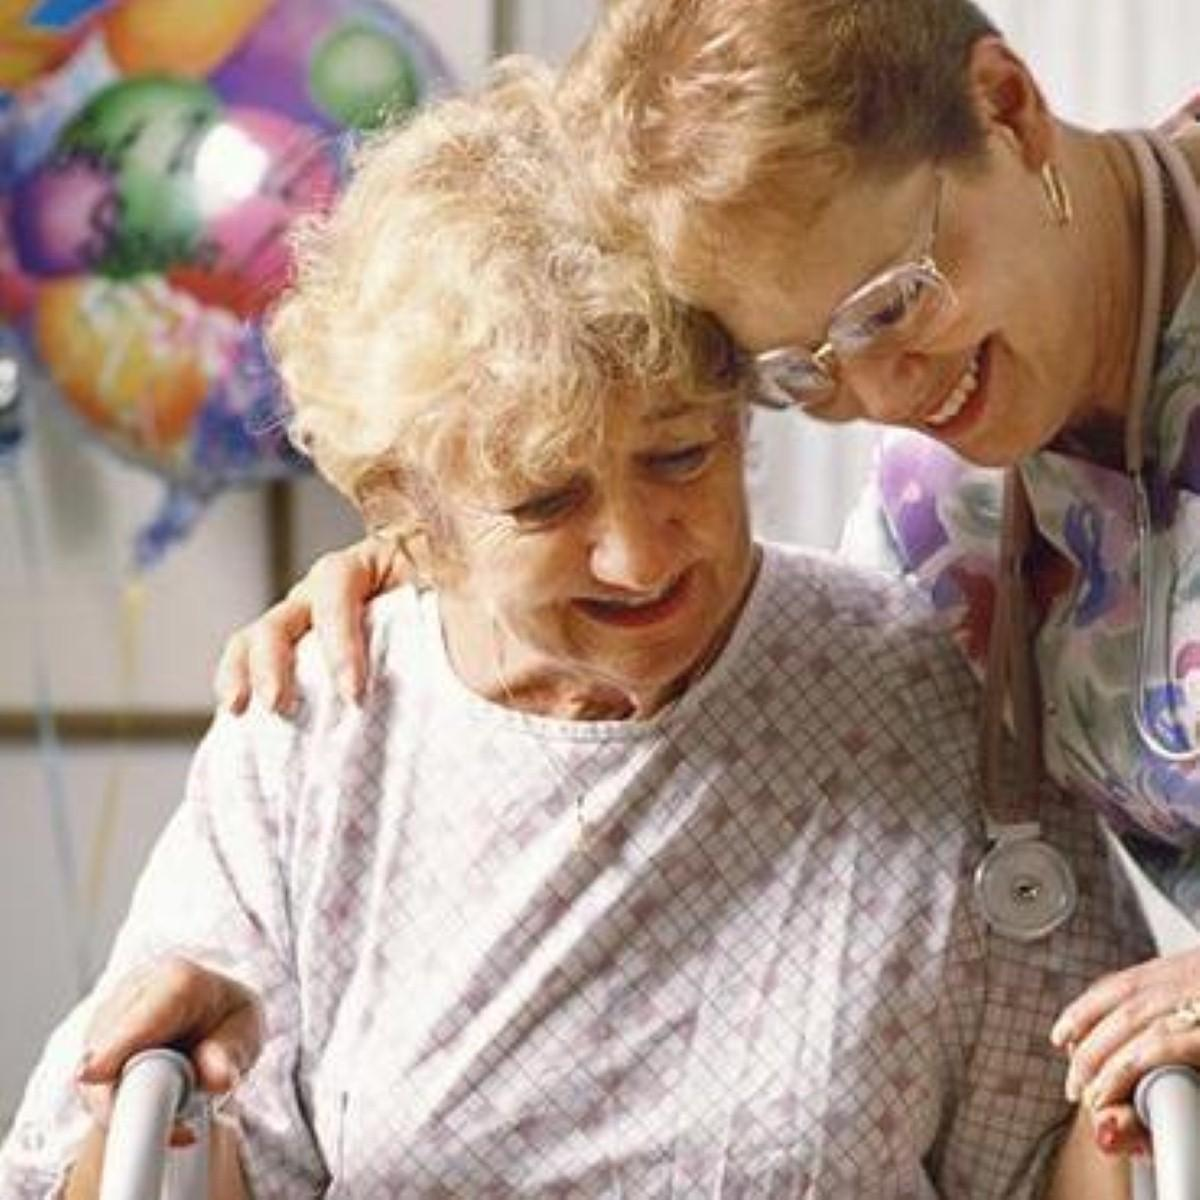 MS Society is to stop providing direct respite care